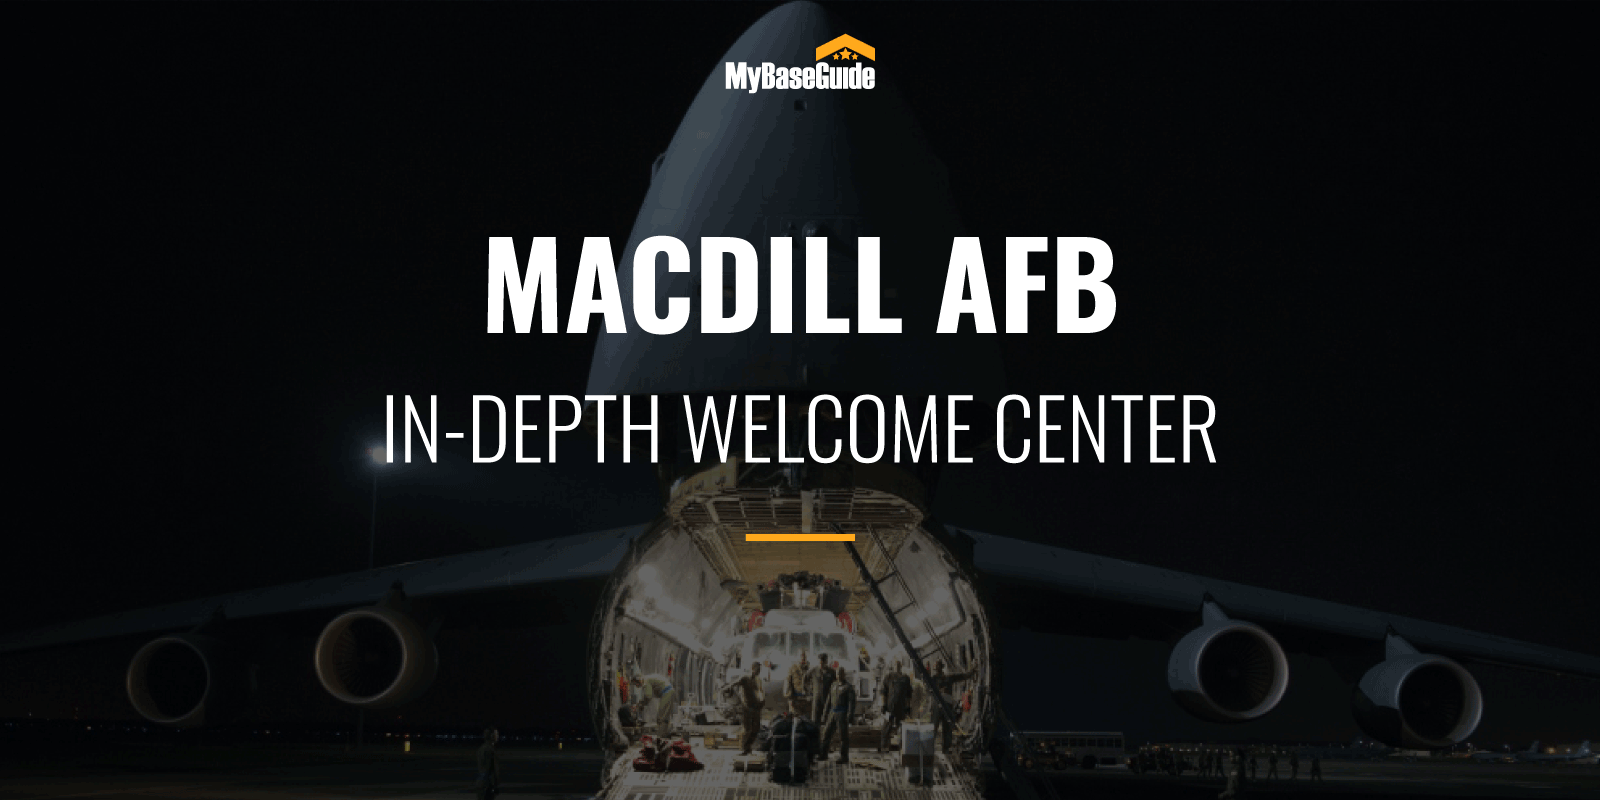 MacDill AFB In-Depth Welcome Center